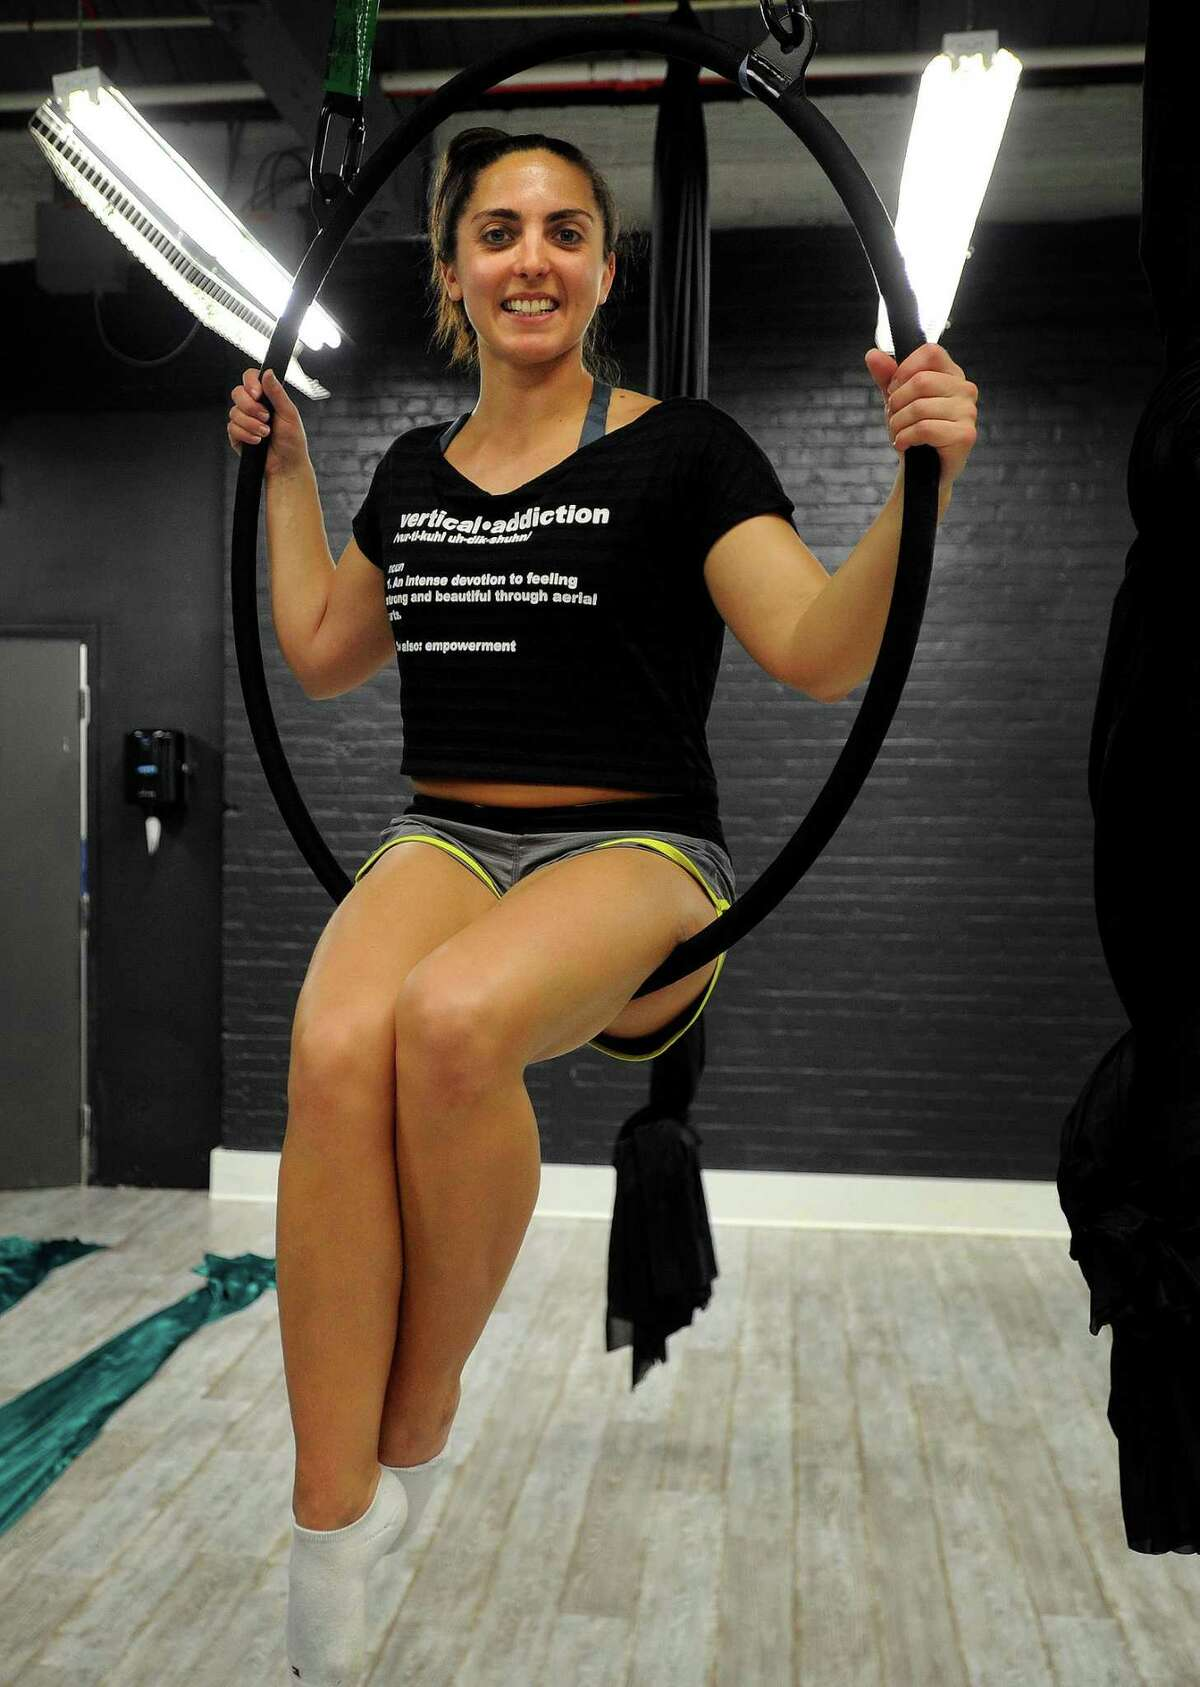 Ashely Popoli, of Stamford, owner the new Vertical Addiction aerial fitness studio at 85 Mill Plain Road in Fairfield, Conn. on Thursday, May 18, 2017.